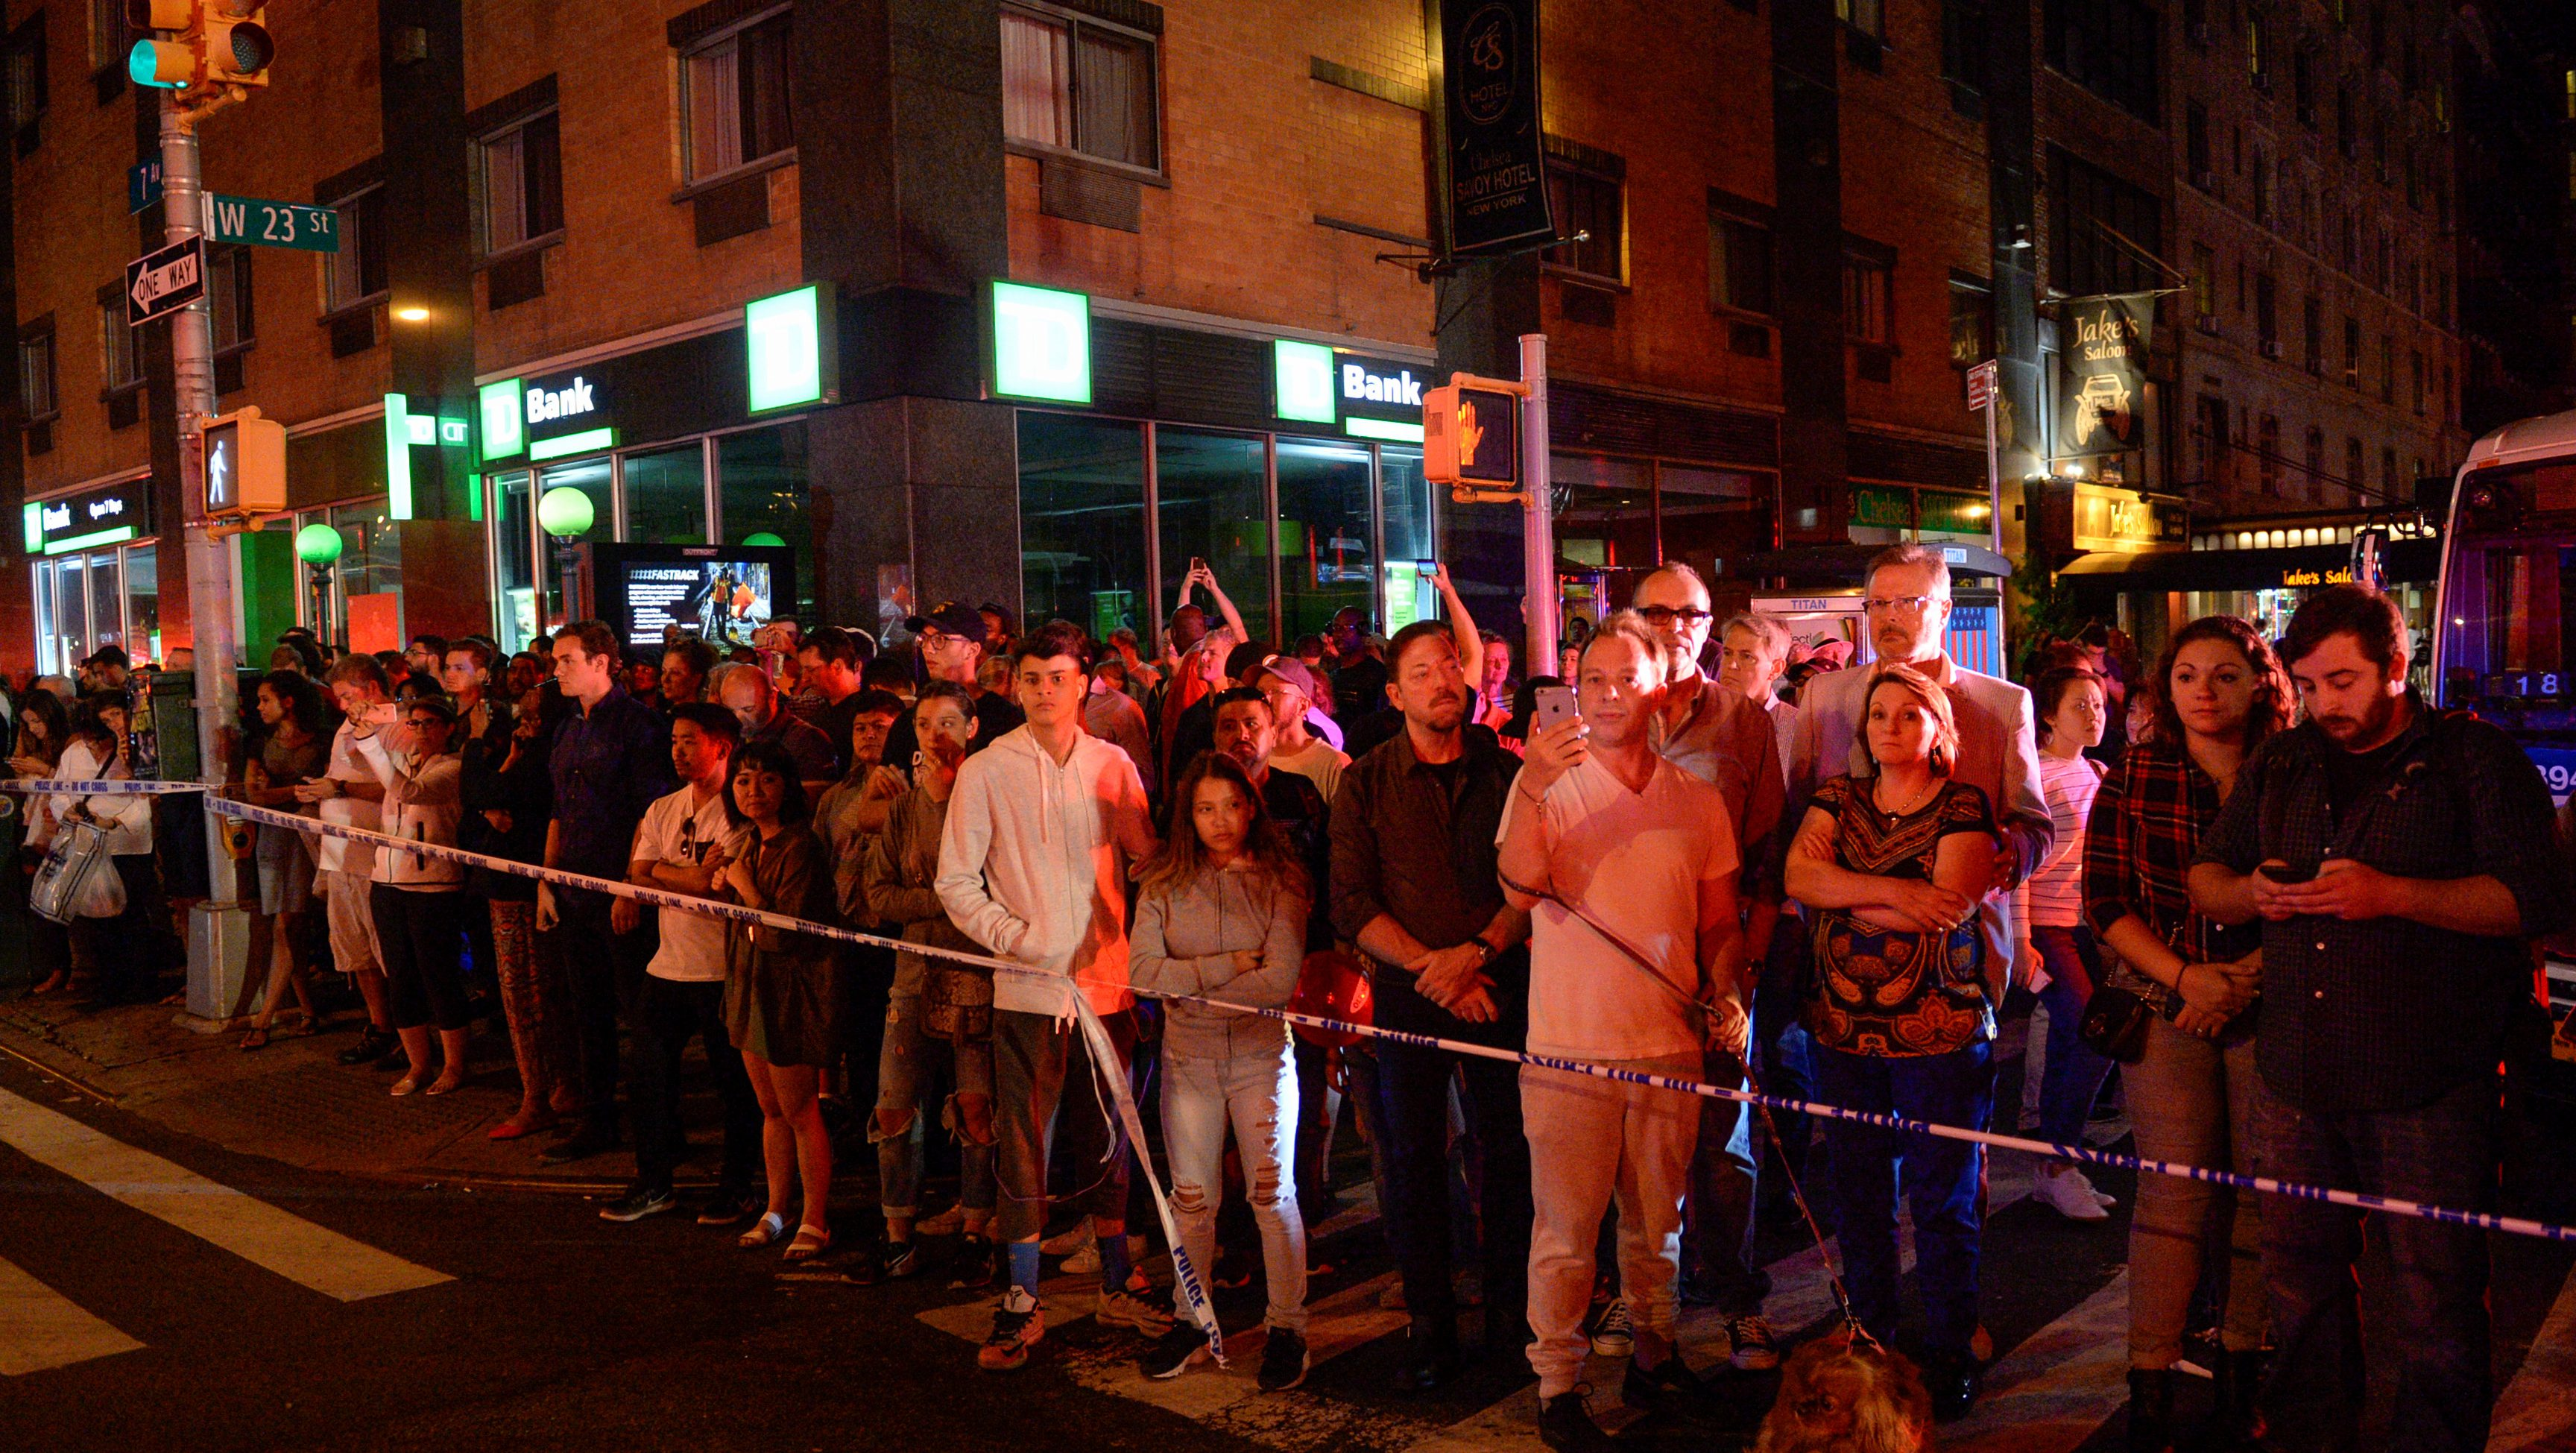 Onlookers stand behind a police cordon near the site of an explosion in the Chelsea neighborhood of Manhattan, New York, U.S.  September 17, 2016.  REUTERS/Rashid Umar Abbasi - RTSO7VJ